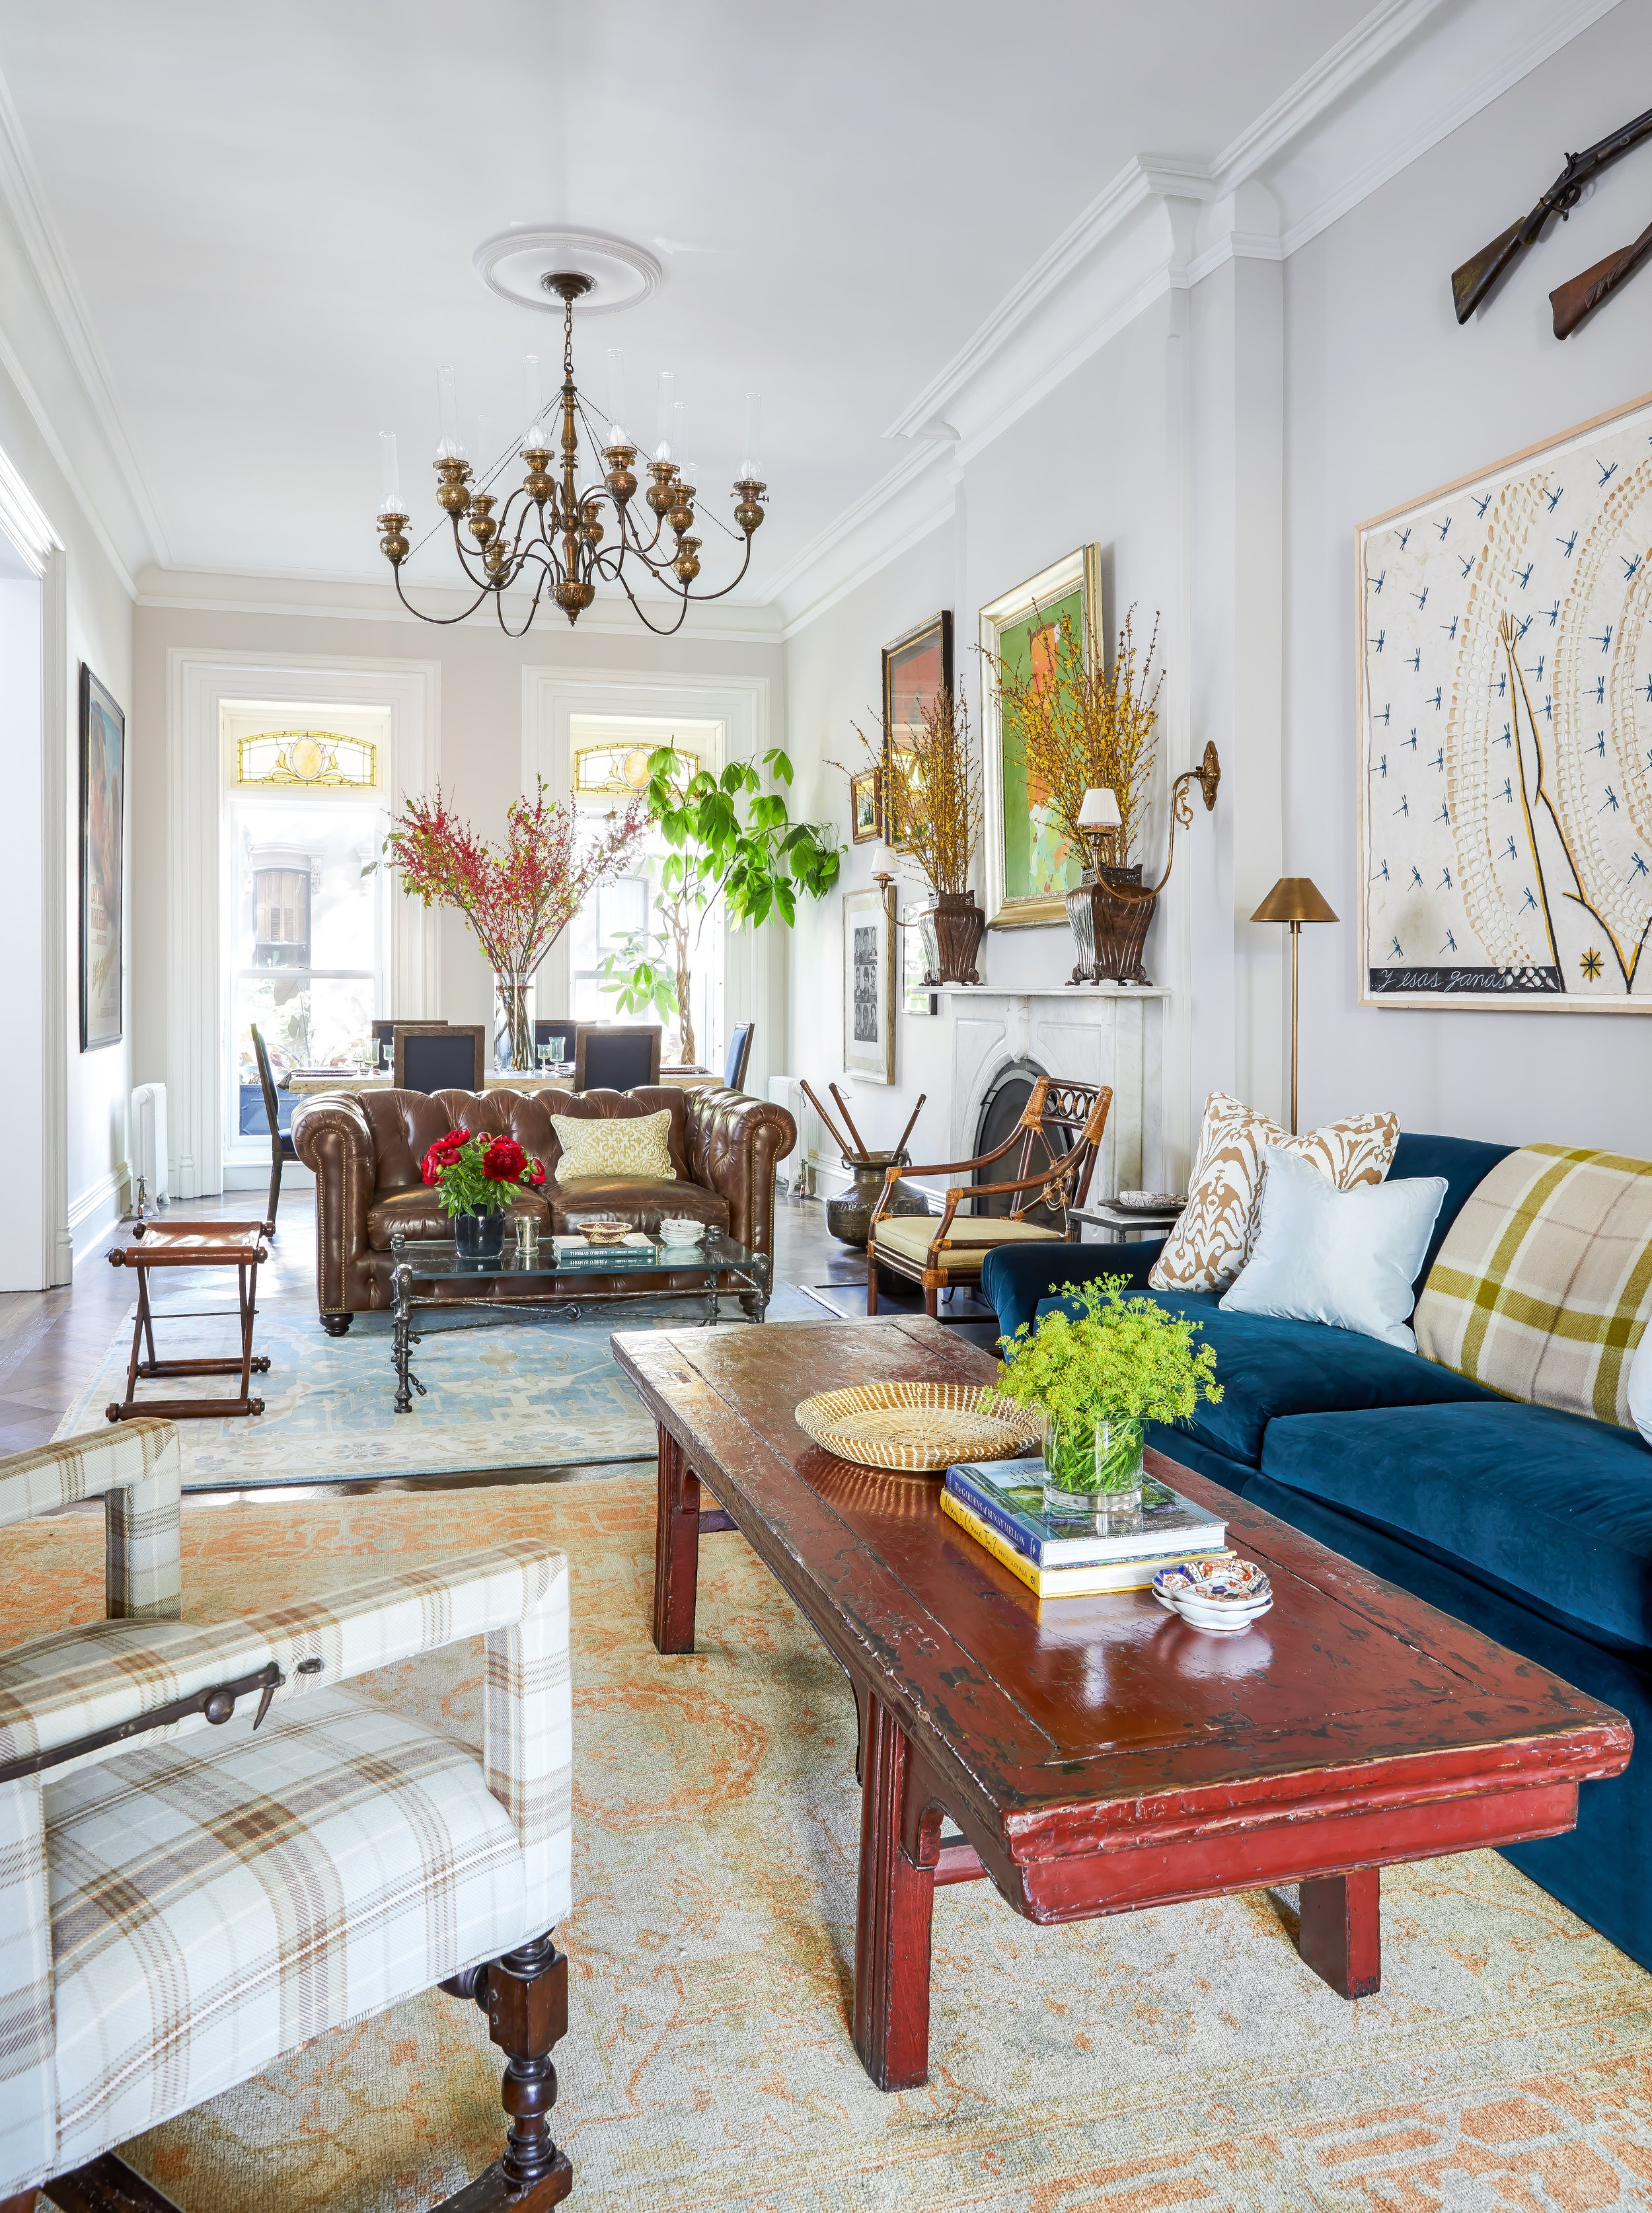 A Brooklyn Parlor in a historic townhouse in Fort Greene with a custom sofa in cotton marine blue velvet, an 18th c. antique red lacquer tea table, a plaid upholstered antique chair from John Rosselli, a custom chesterfield sofa, and a 19th c. 12-arm hand hammered brass chandelier that was converted from gas to electric.